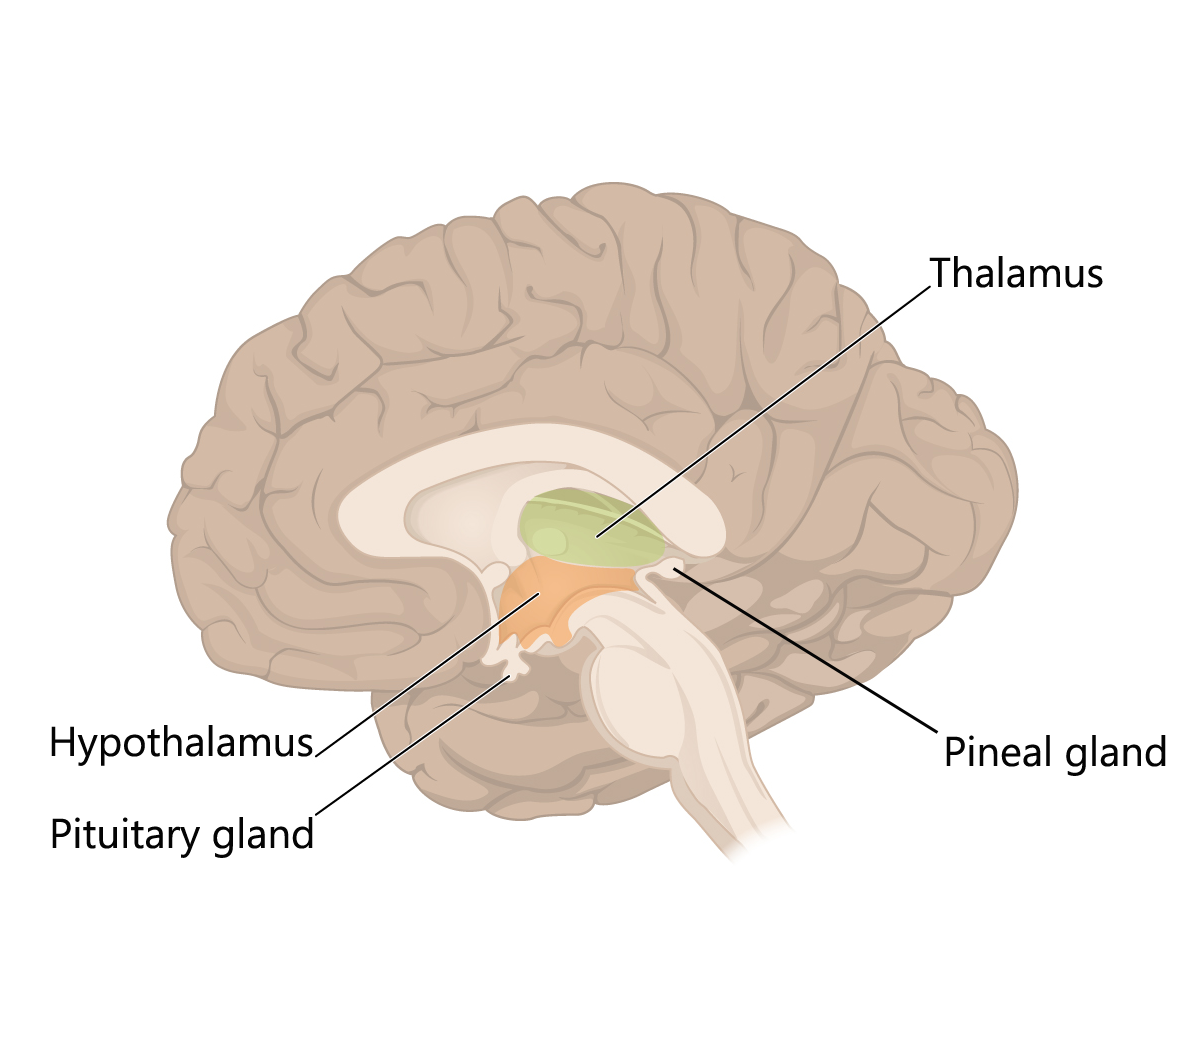 The structures within the diencephalon